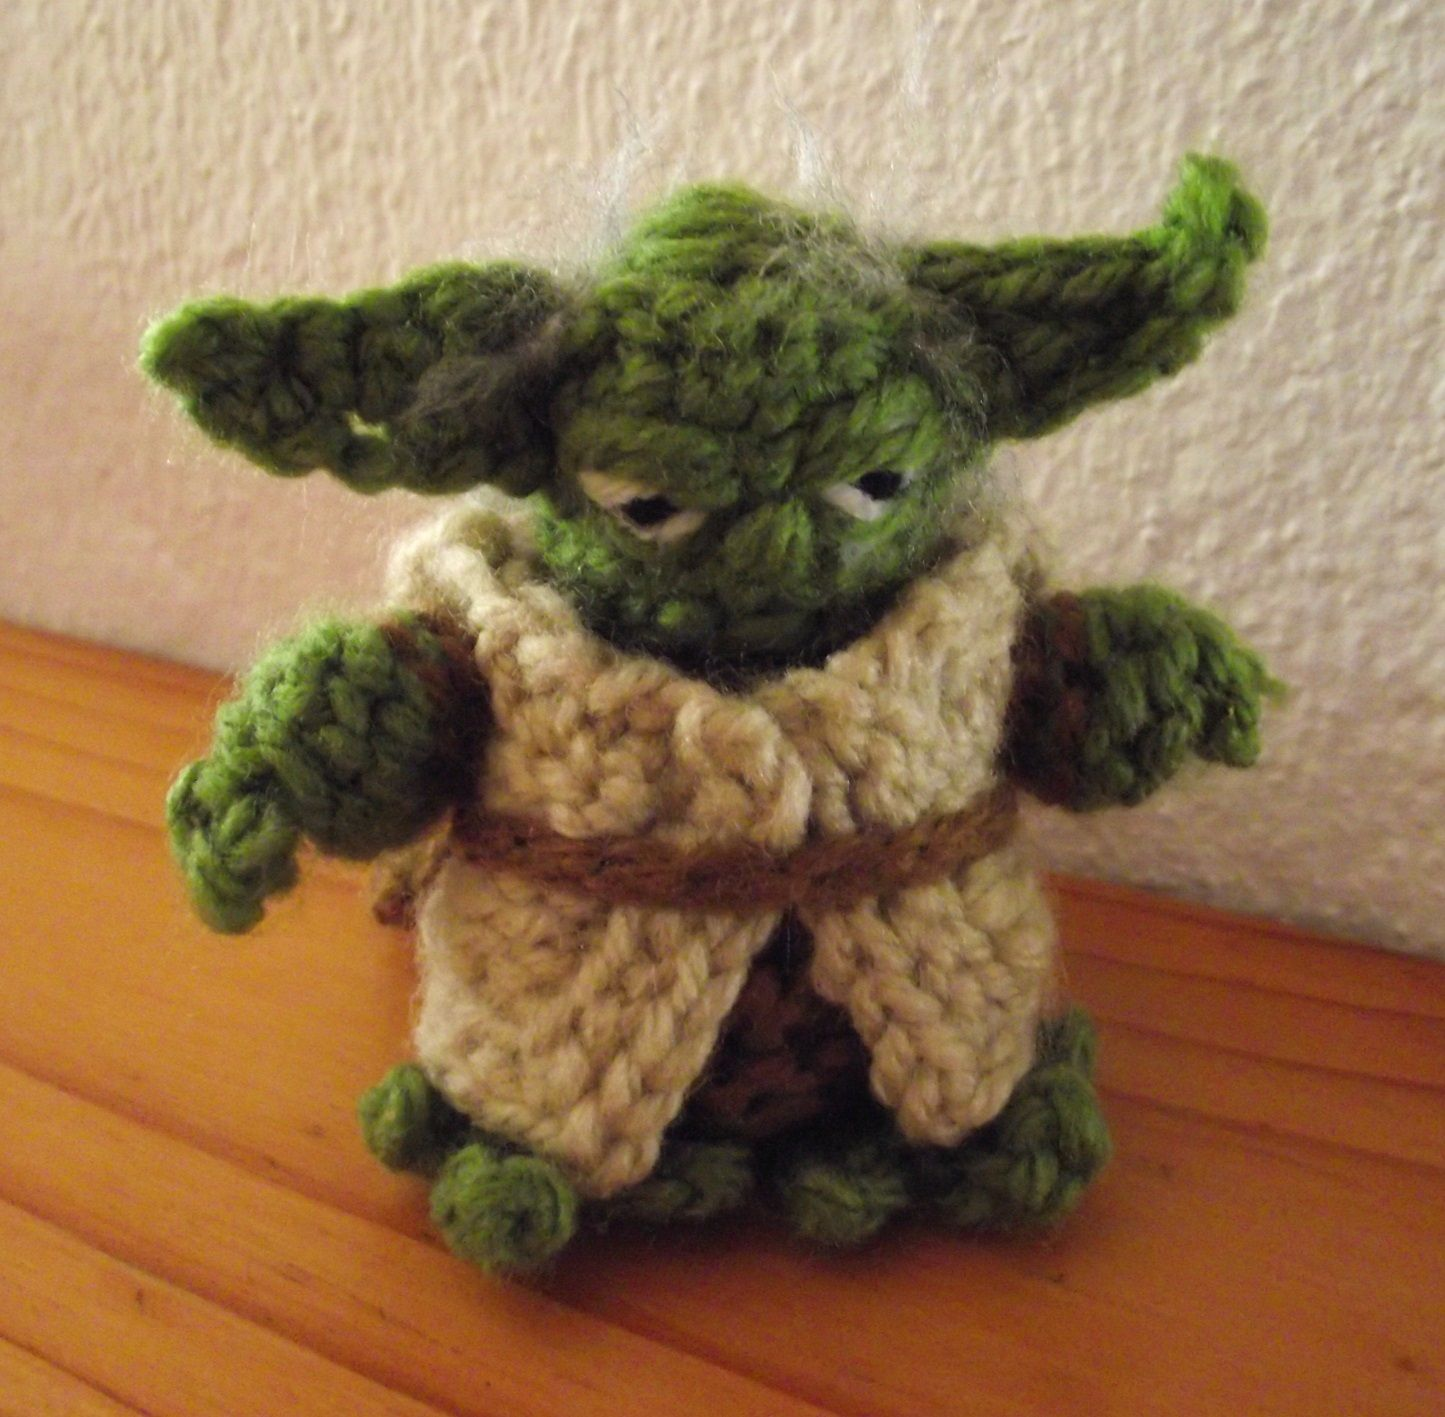 Crochet Yoda from Star Wars. Adapted from www.happytogethercreates ...